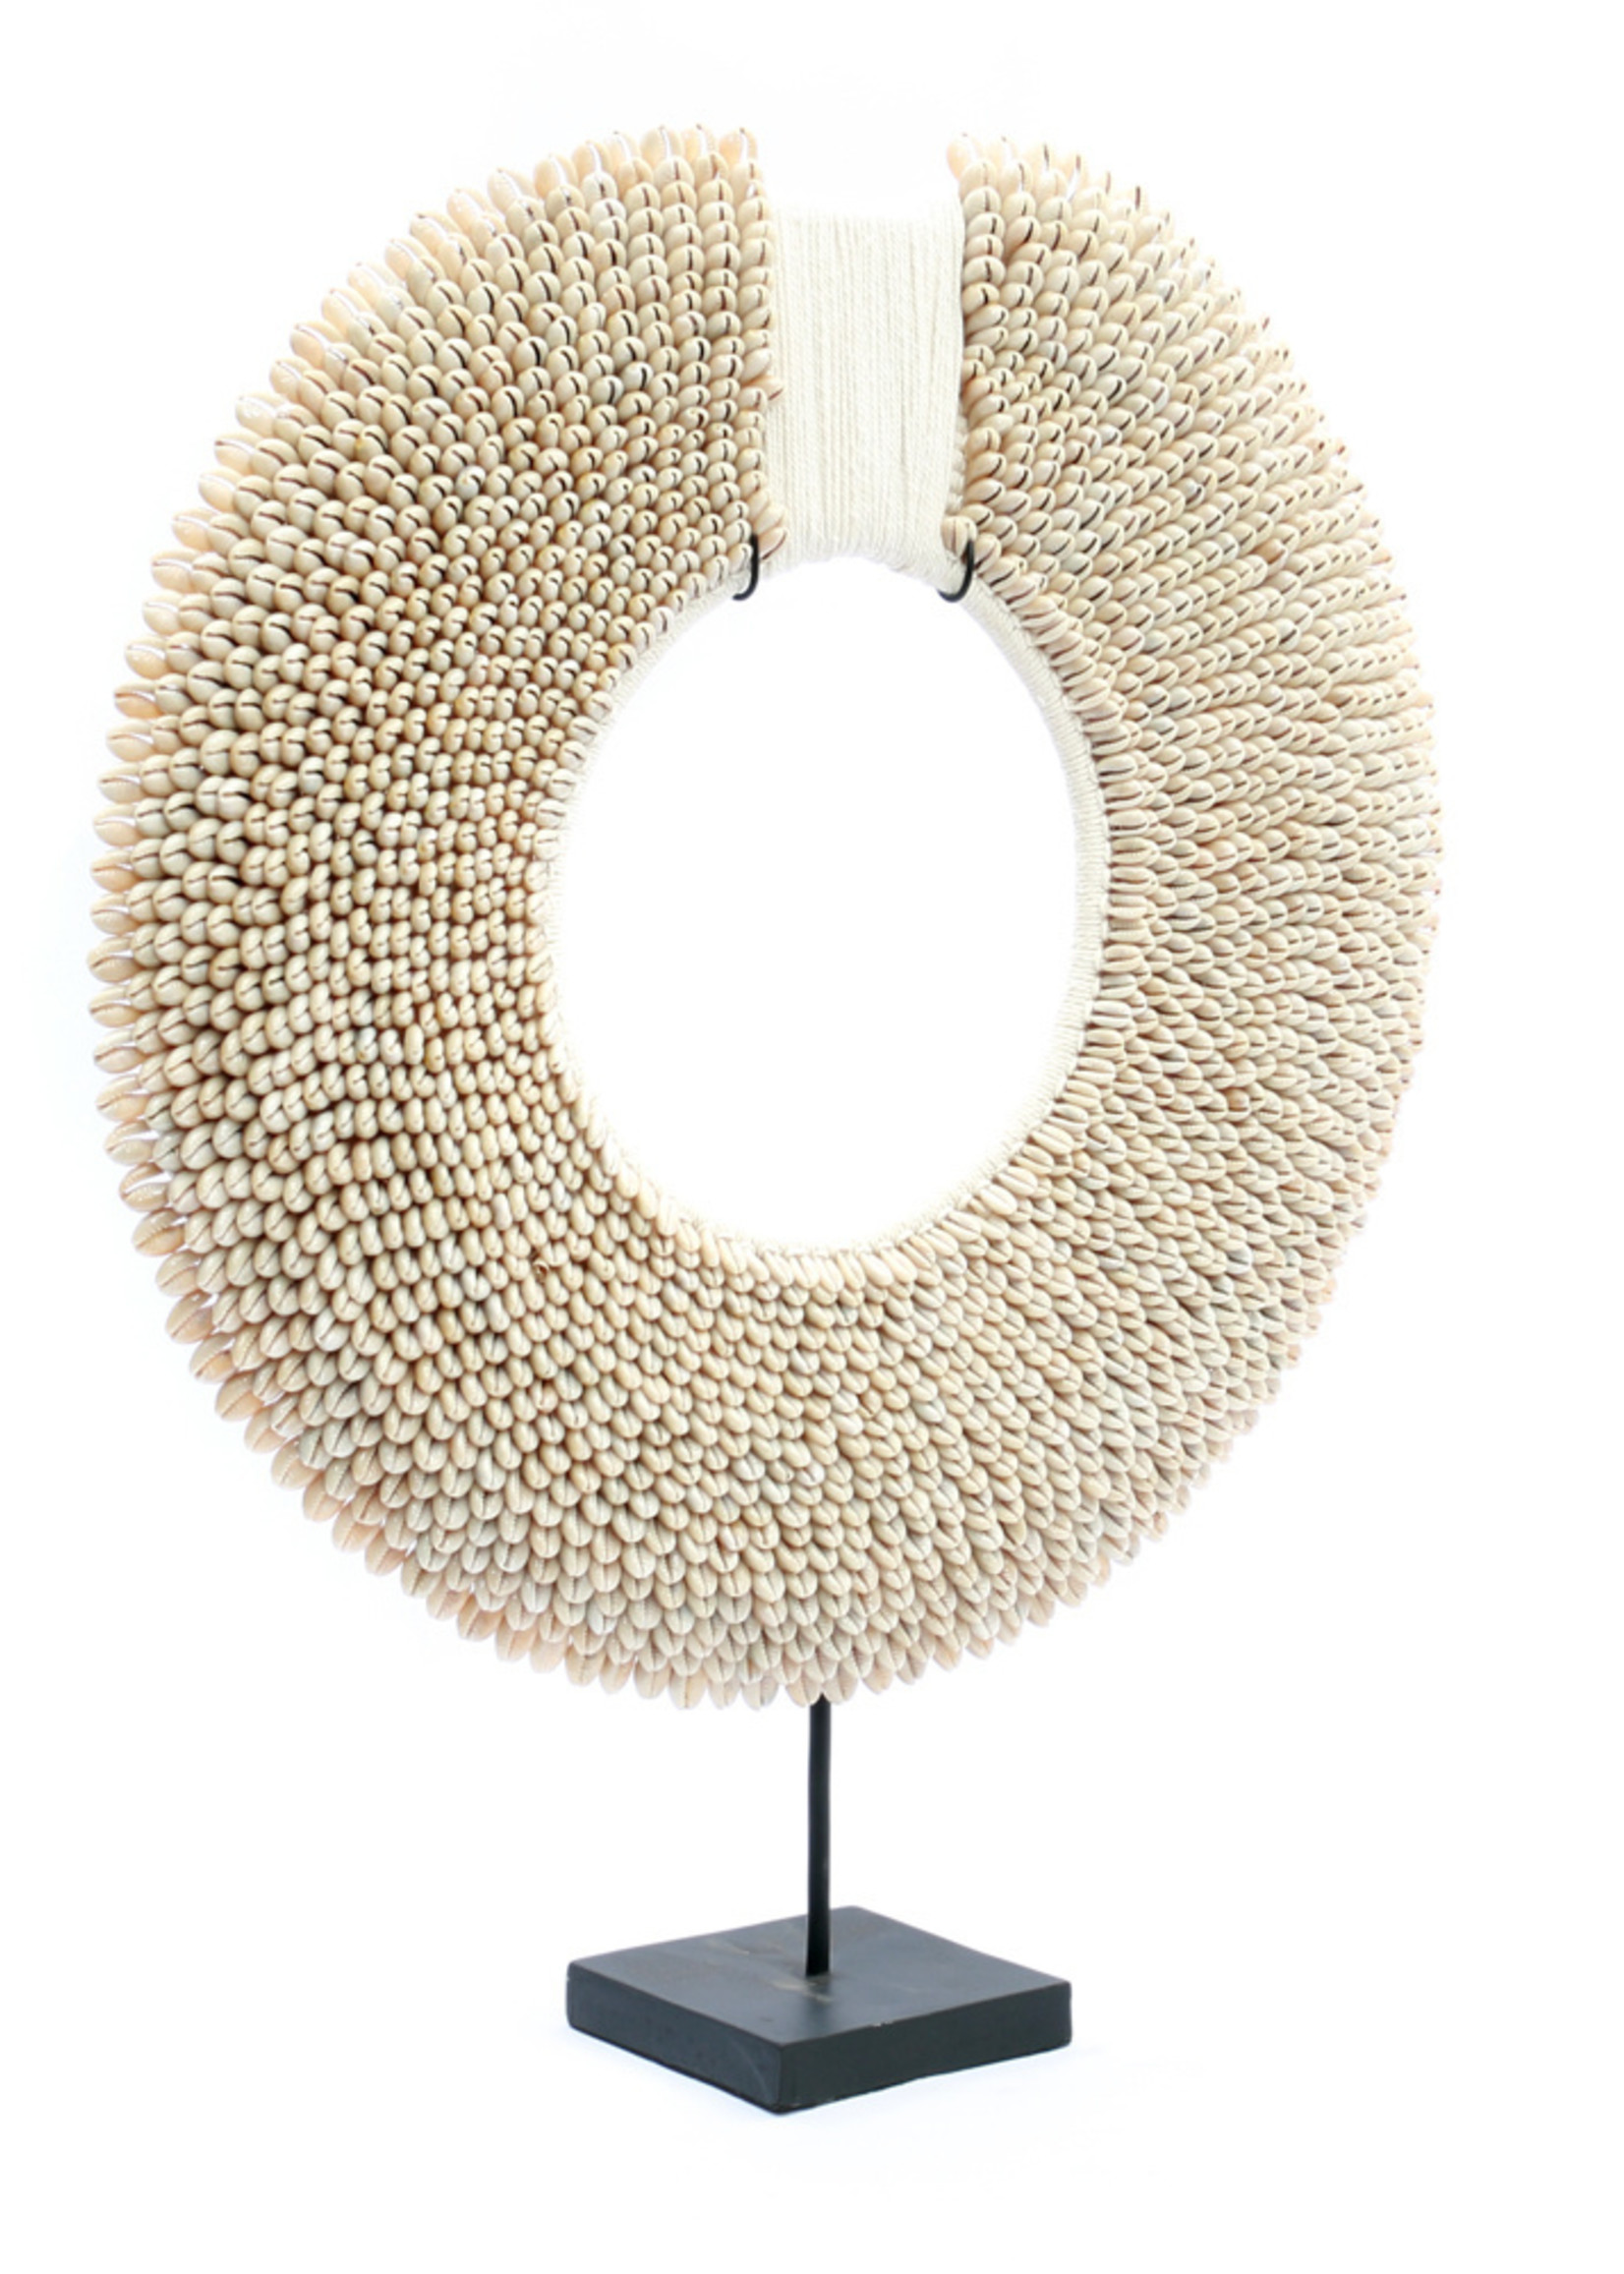 The Papua Shell Disc on Stand - White - L